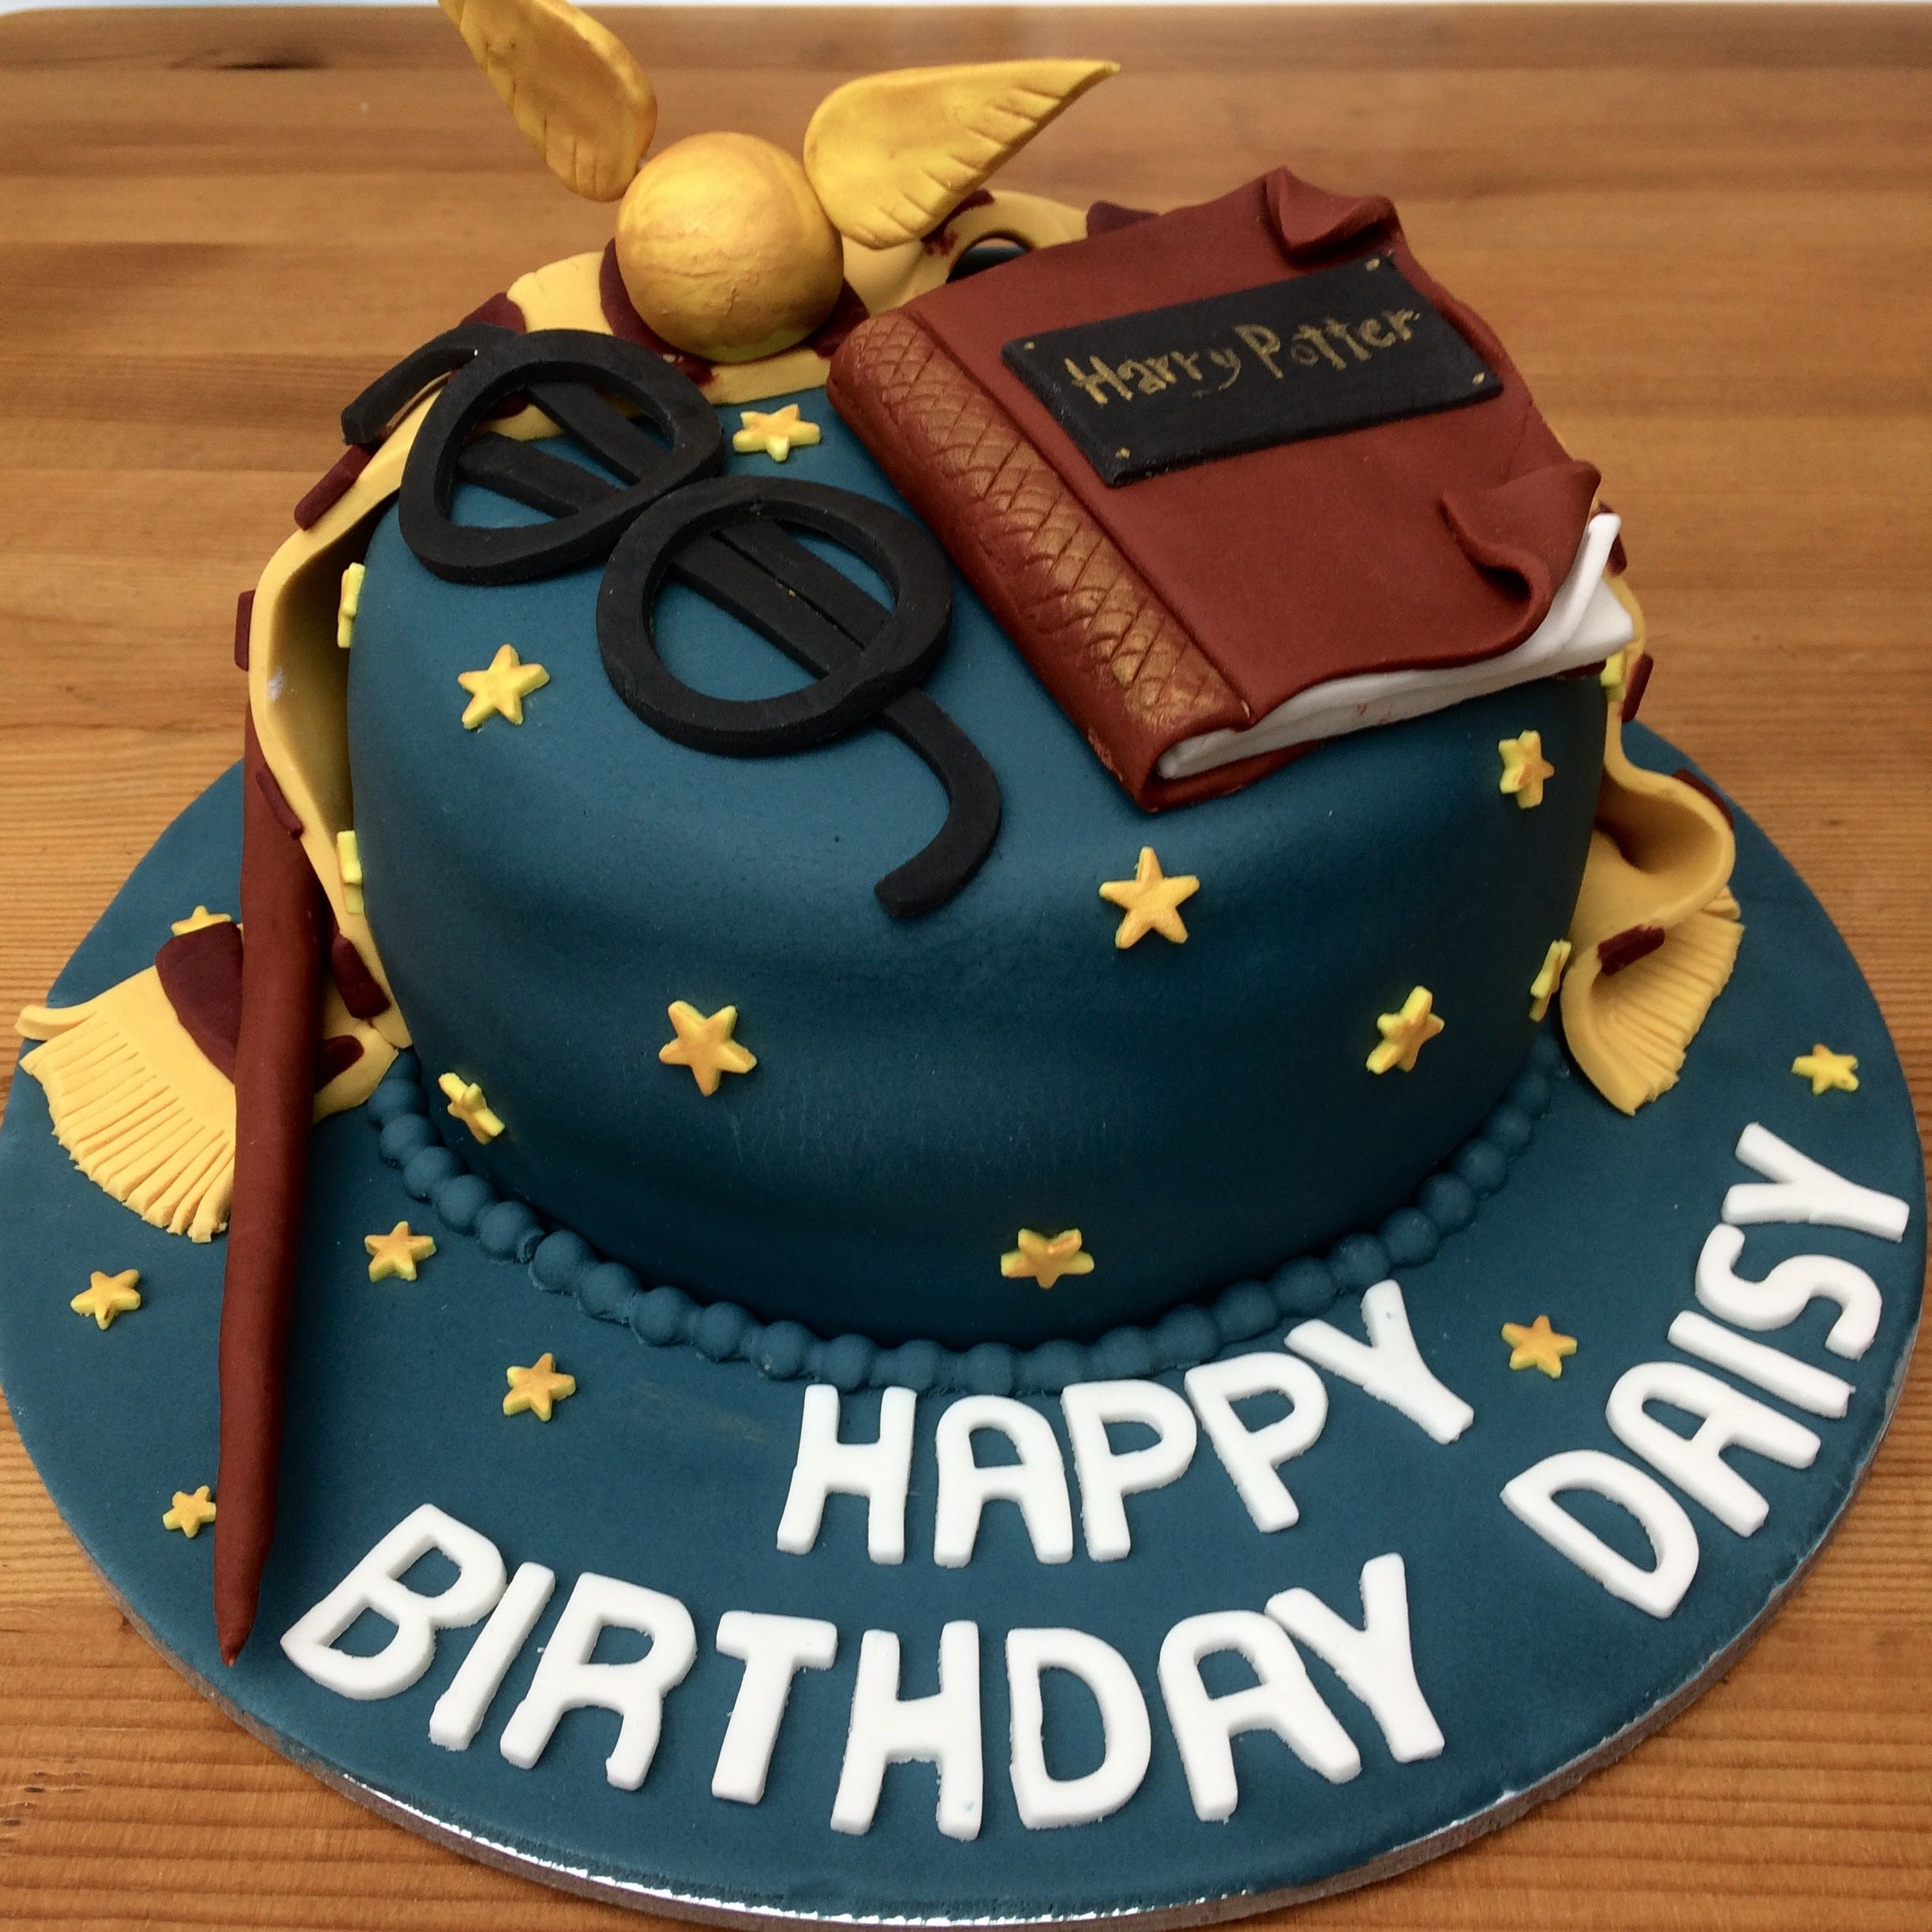 Harry Potter birthday celebration cake with wand spell book